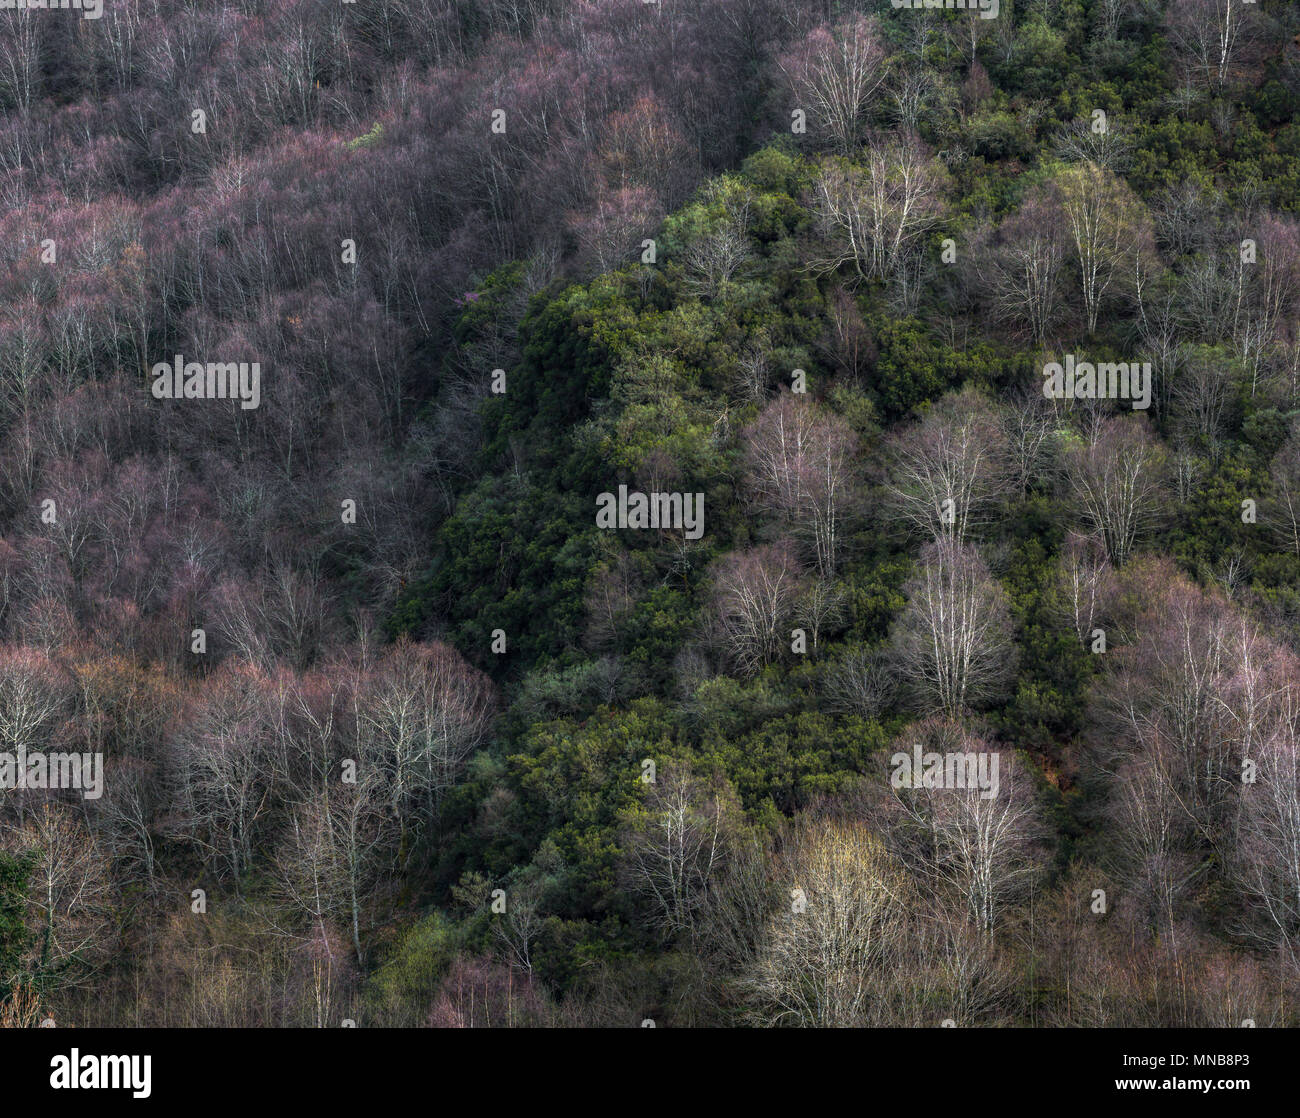 Mixed Deciduous And Perennial Forest In Samos Lugo Galicia Stock Photo 185259819 Alamy